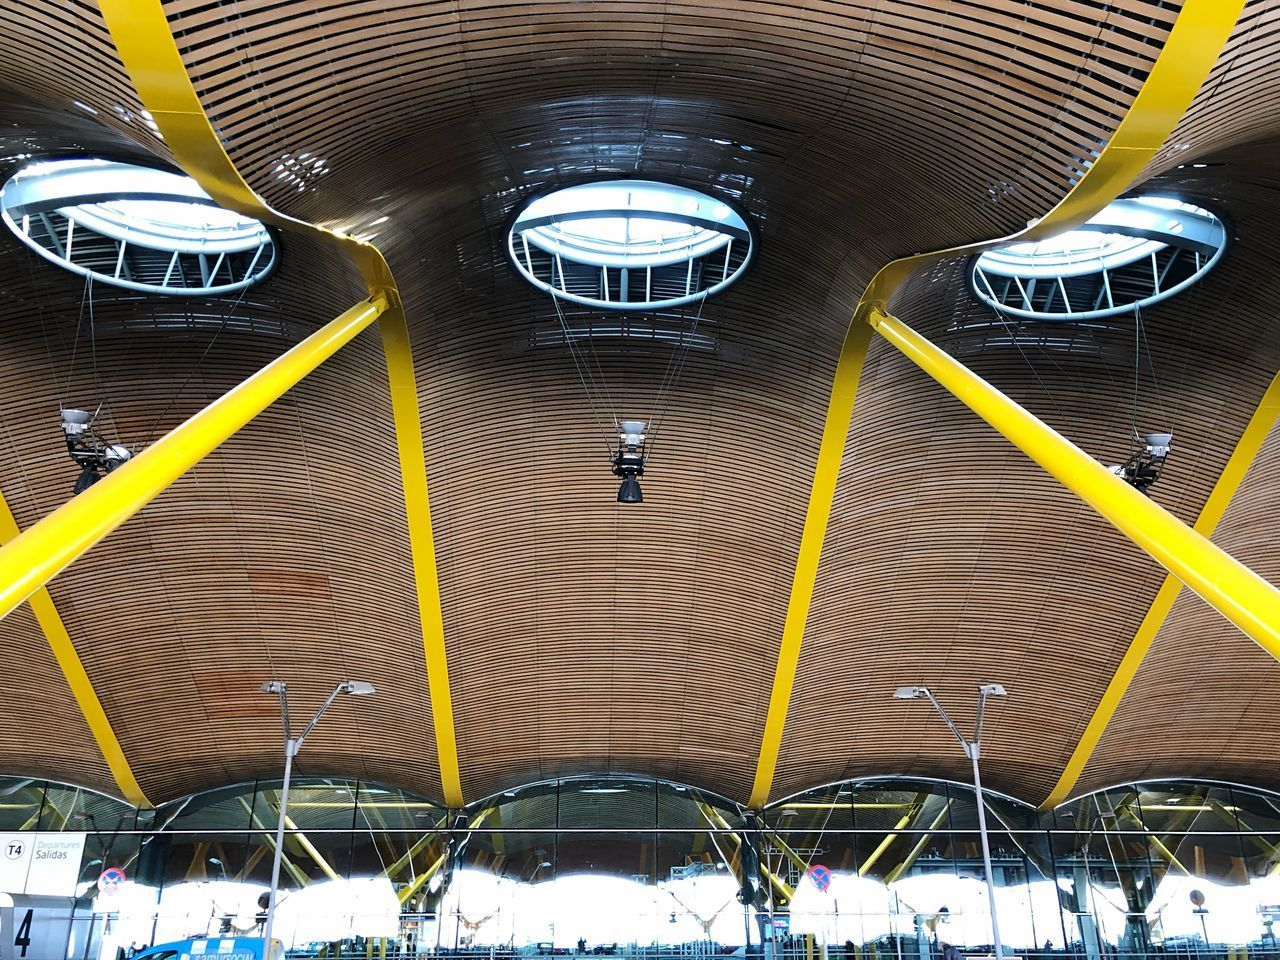 architecture, built structure, indoors, ceiling, illuminated, yellow, hanging, transportation, lighting equipment, no people, modern, metal, day, connection, roof, light, building